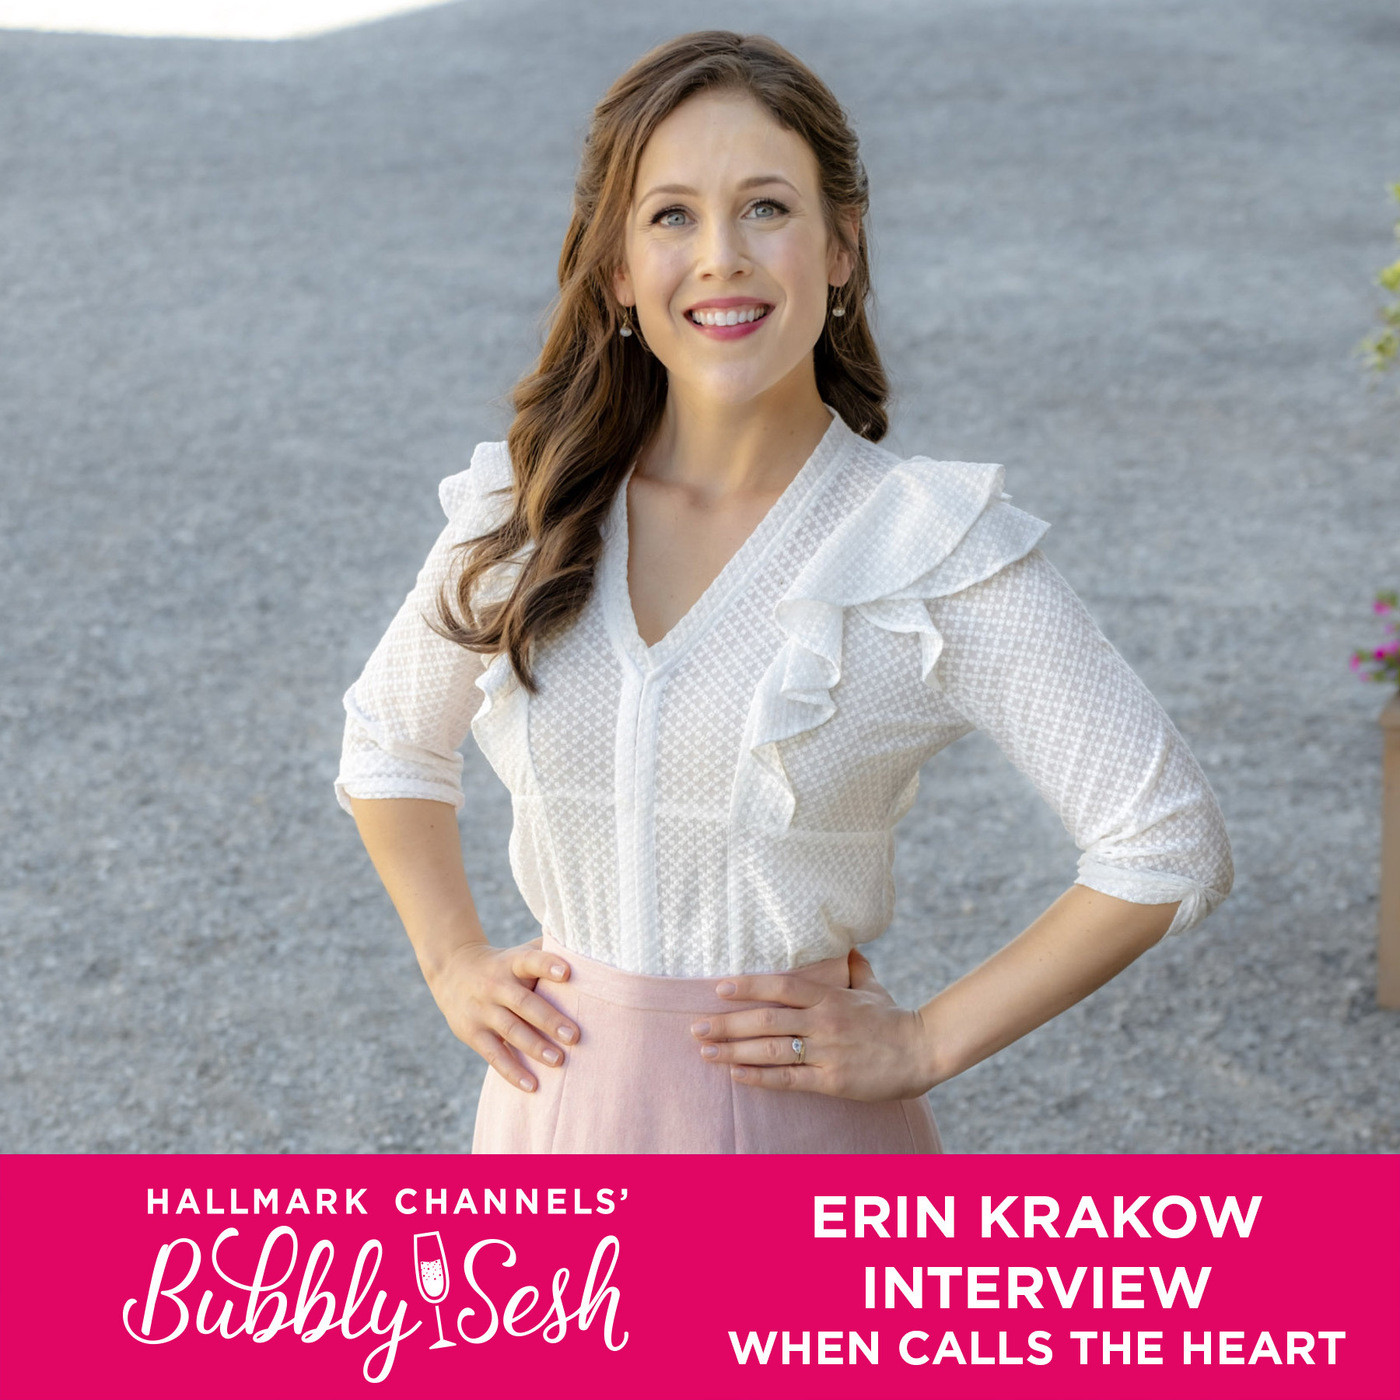 Erin Krakow Interview: When Calls the Heart